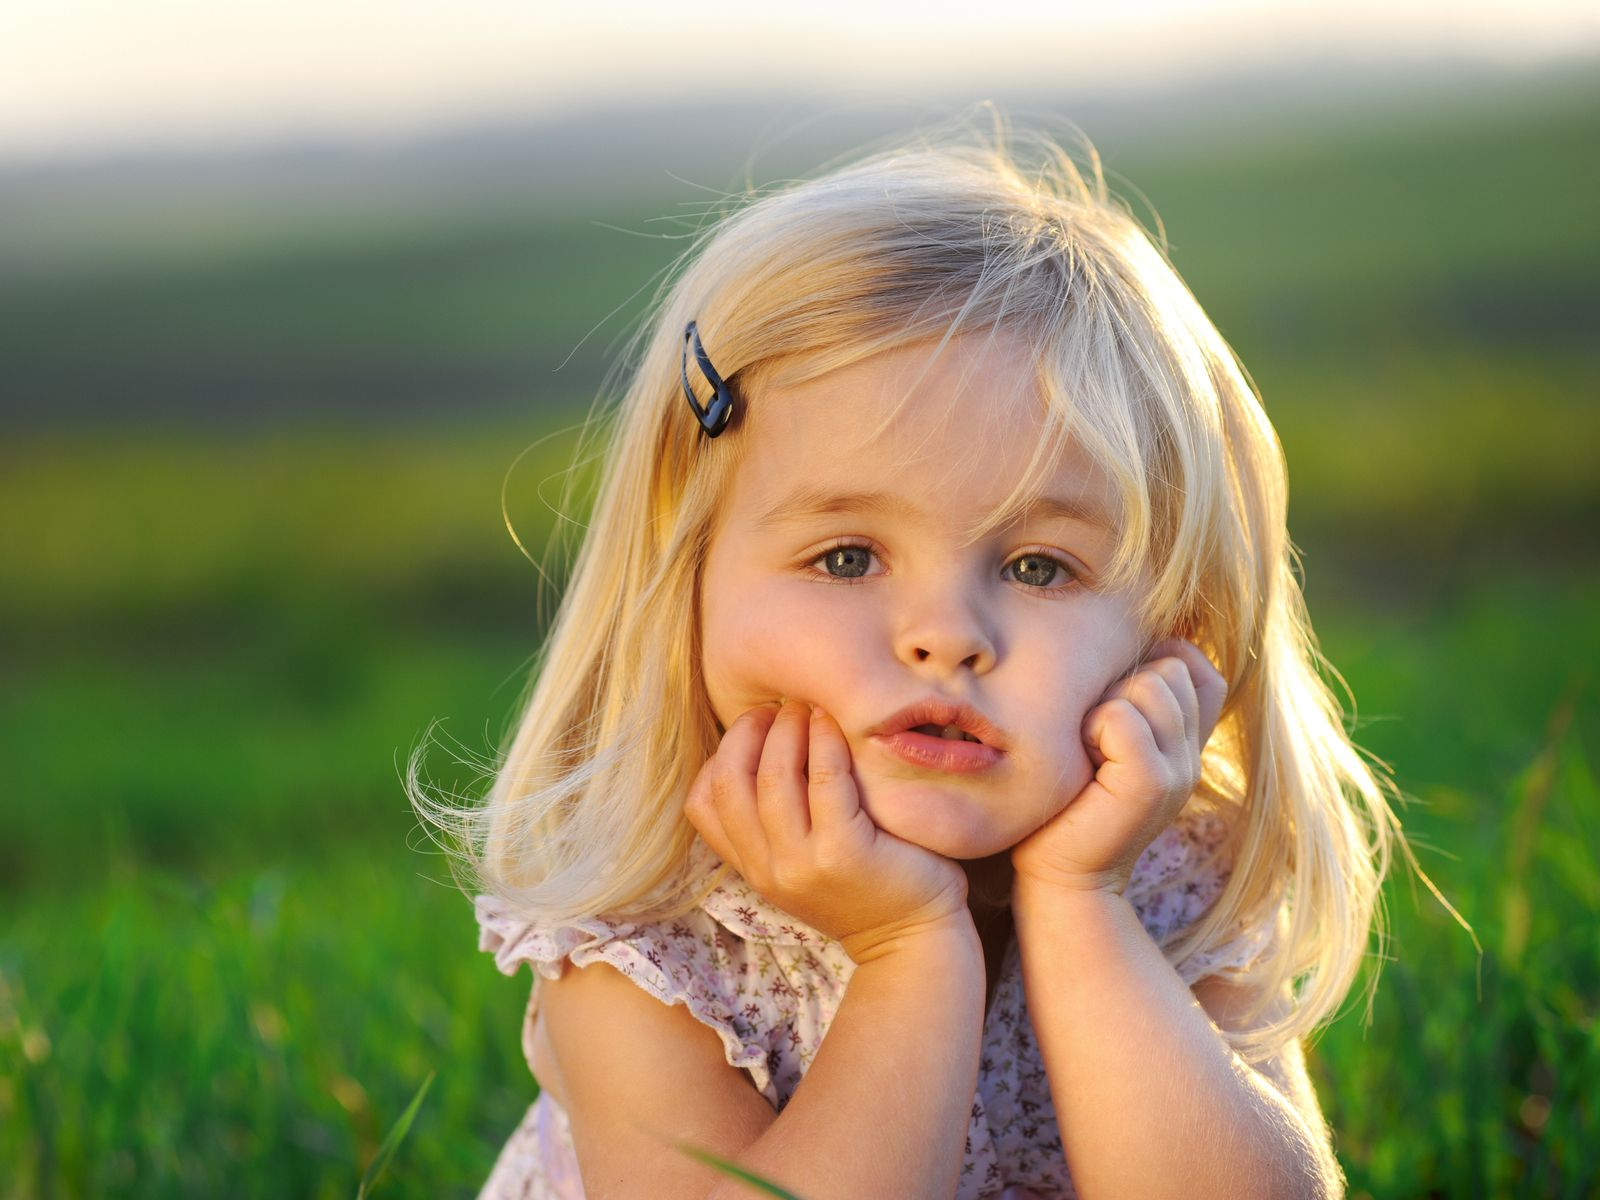 beautiful little girls | cute beautiful little girl hd desktop